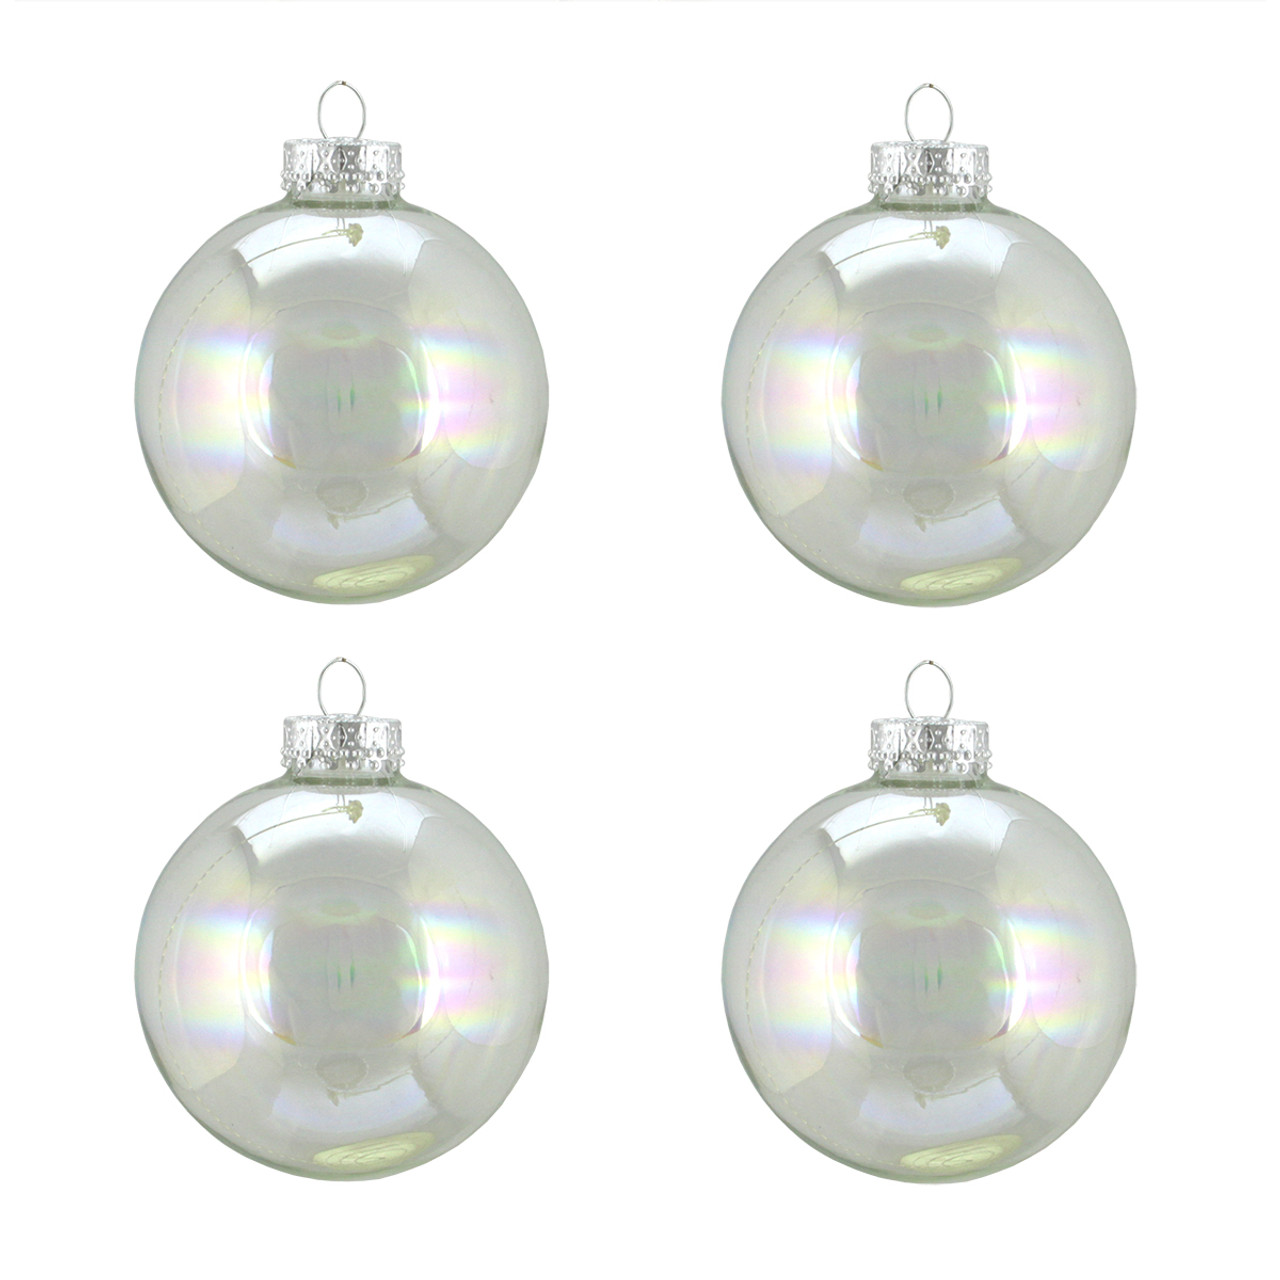 Fullsize Of Clear Christmas Ornaments